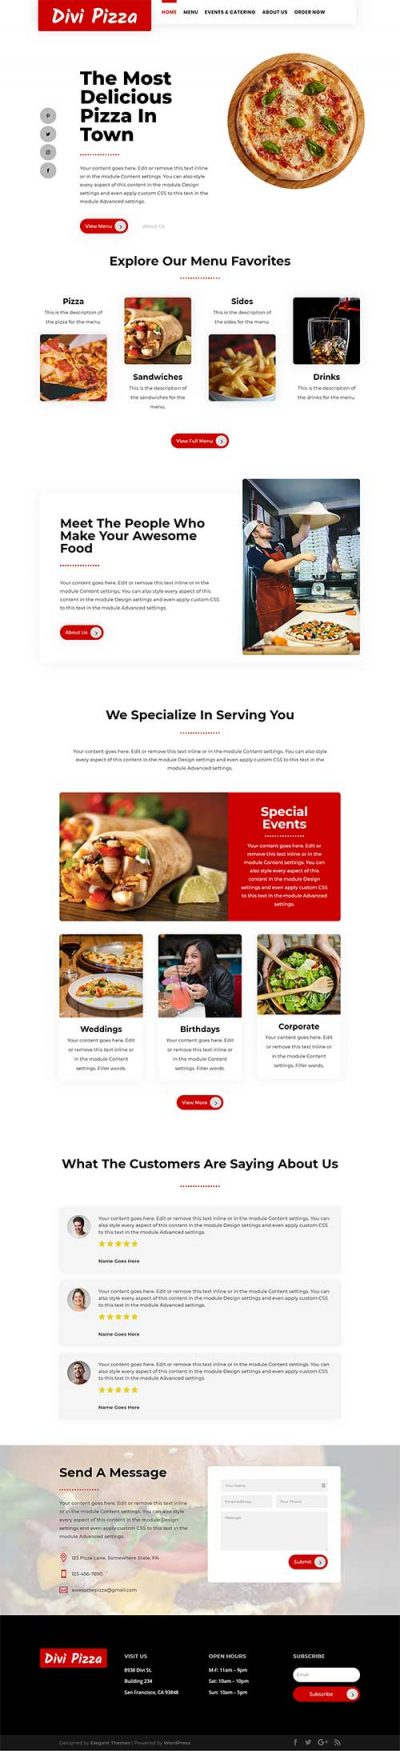 Divi pizza restaurant layout